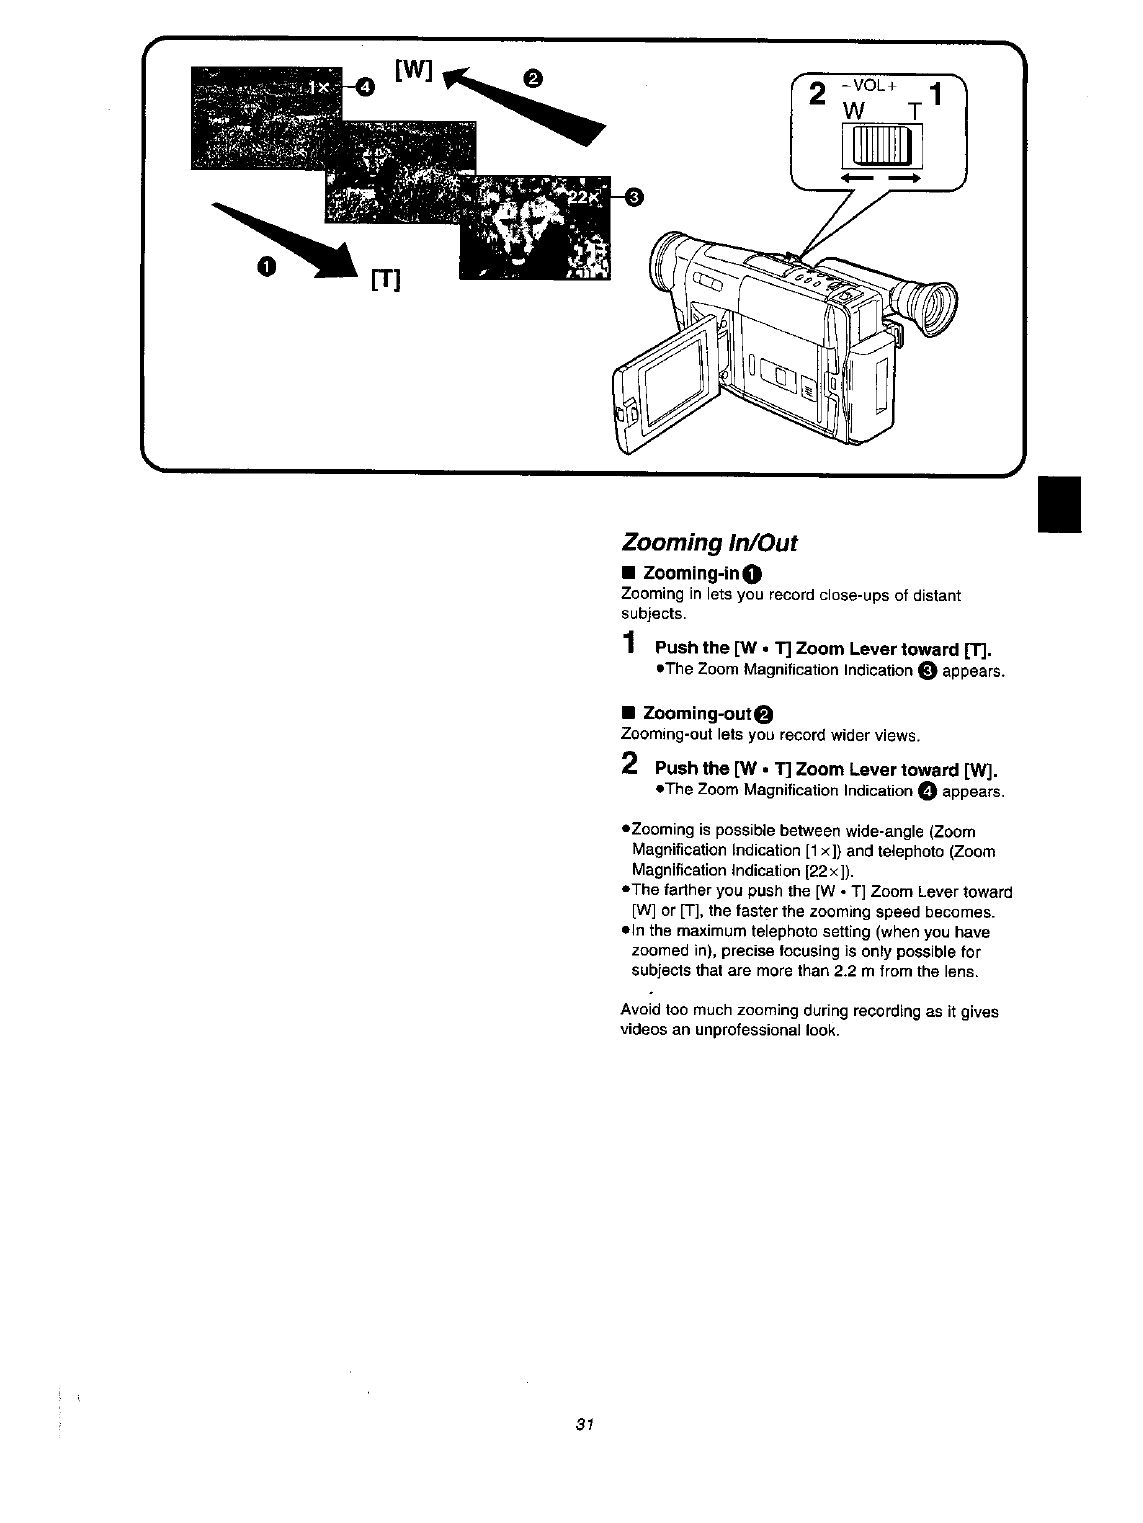 Page 31 of Panasonic Camcorder NV VX 27 User Guide